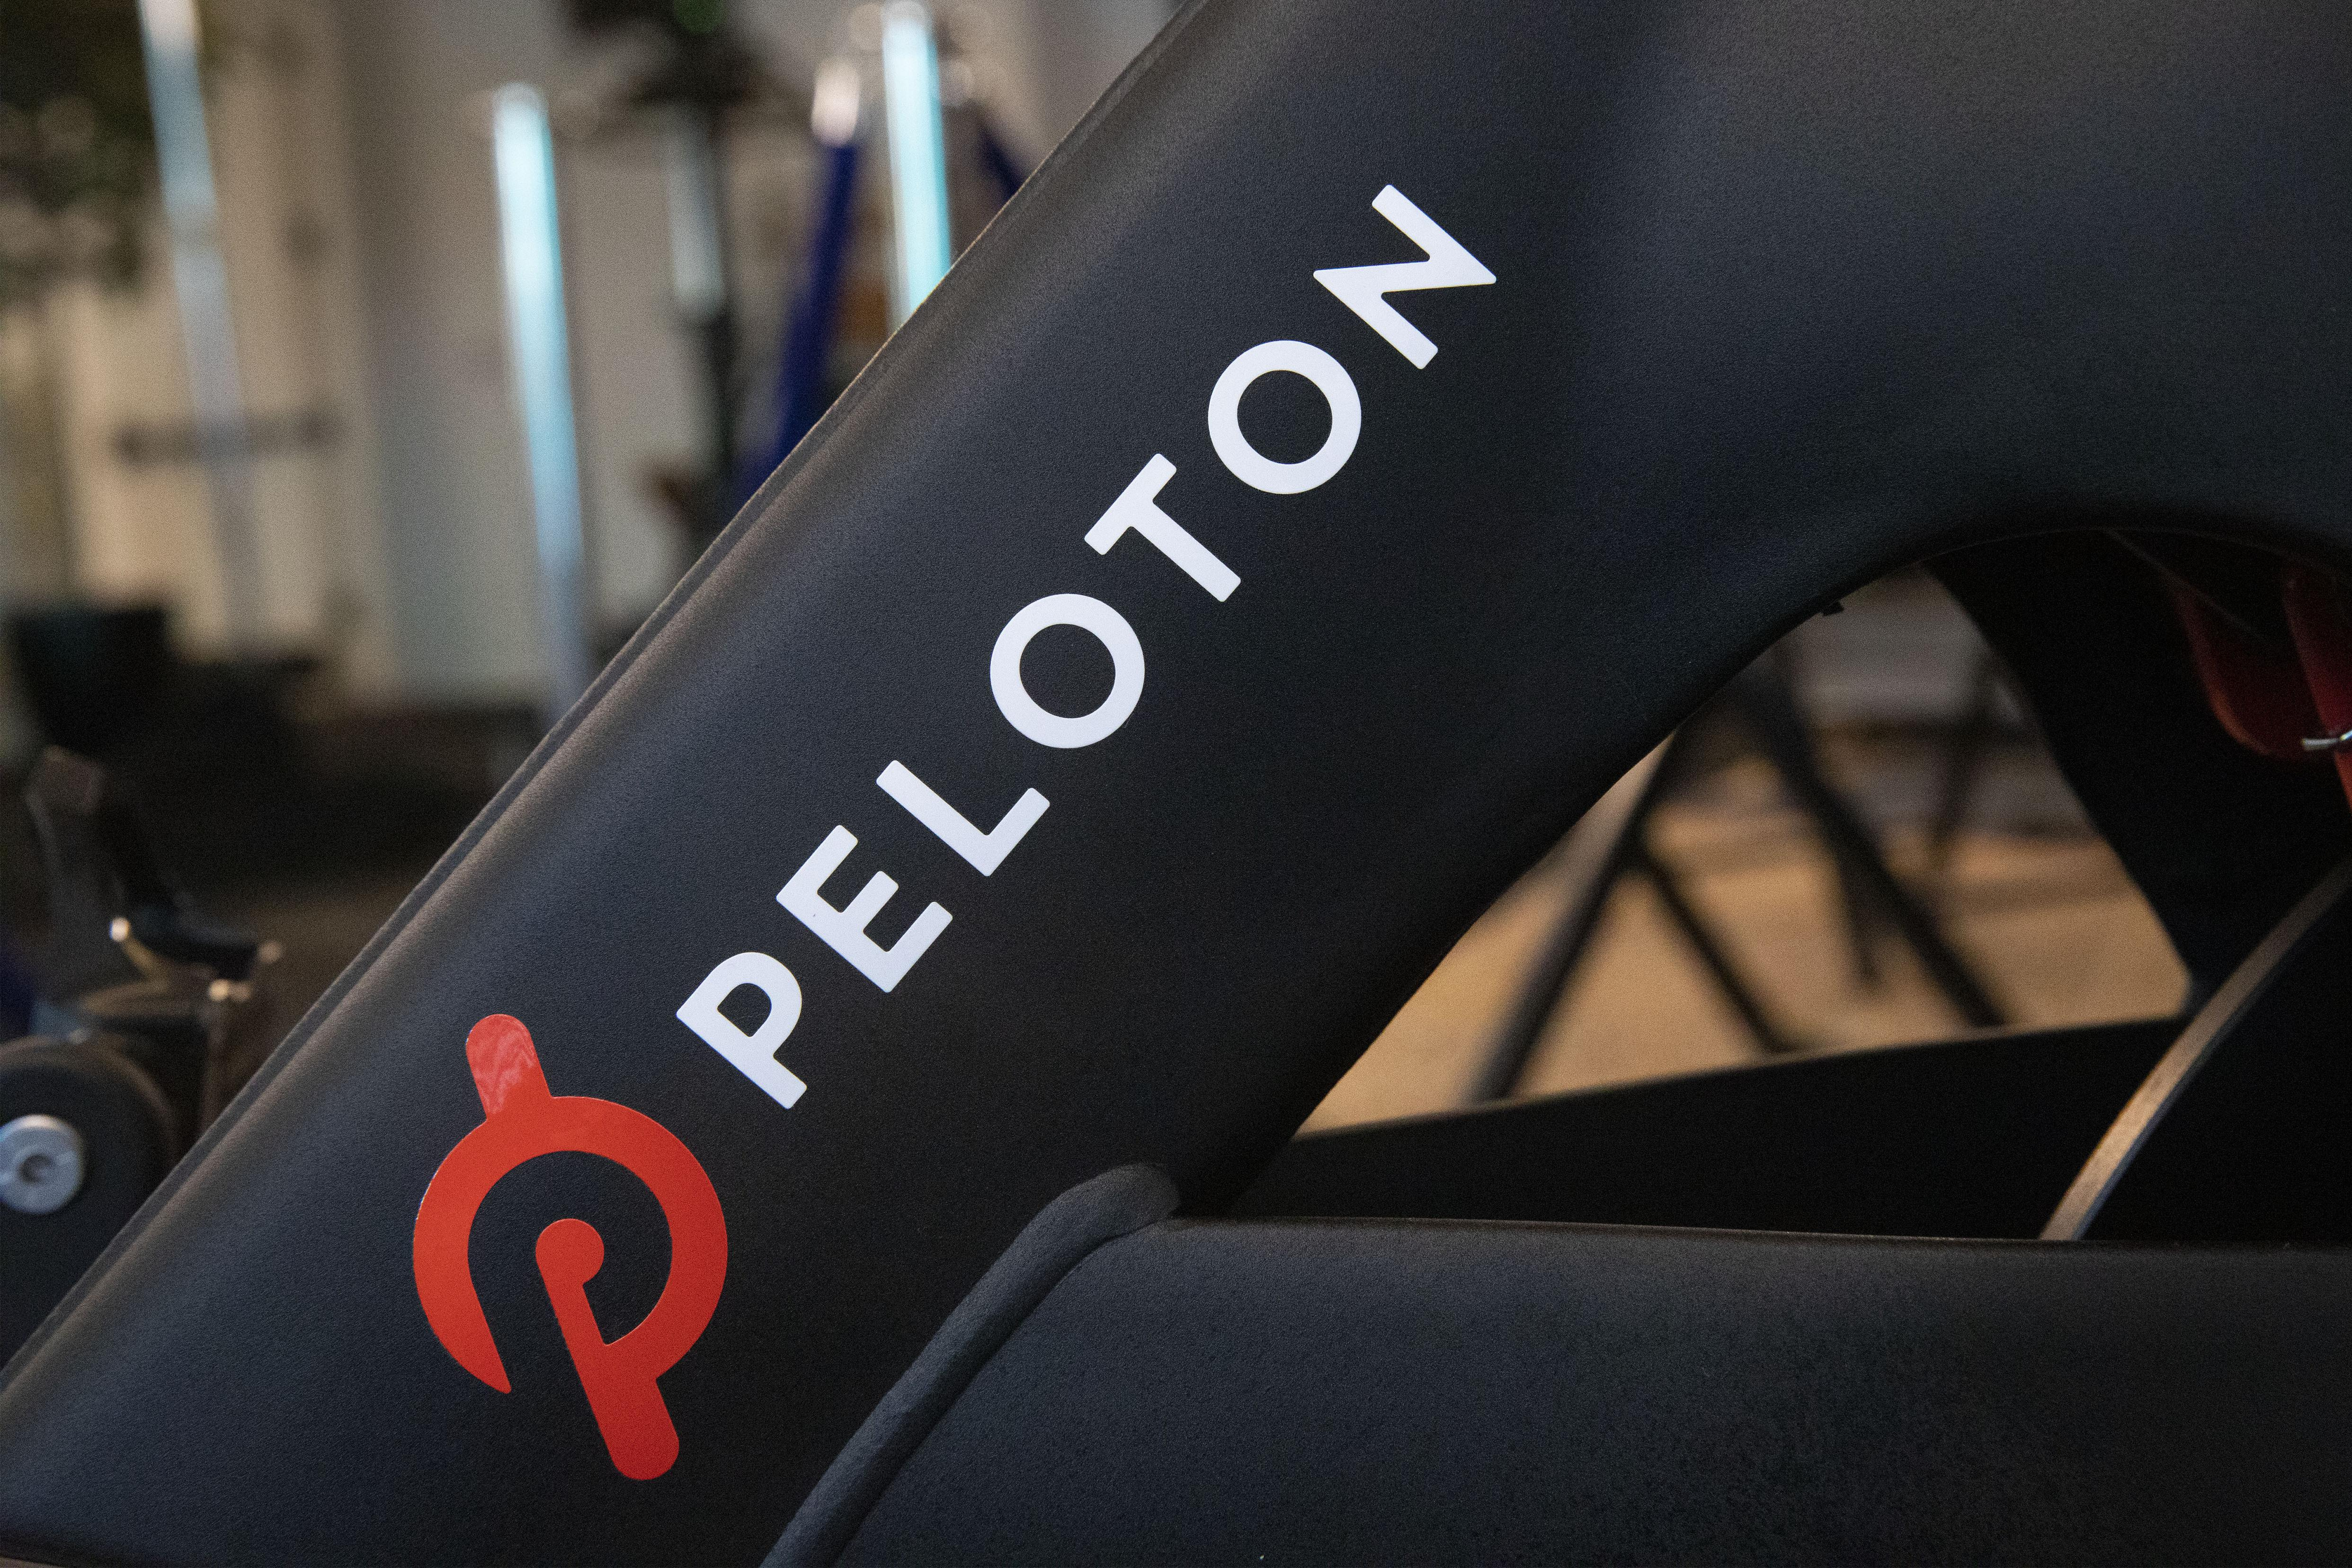 Peloton 'disappointed in how some have misinterpreted' holiday ad